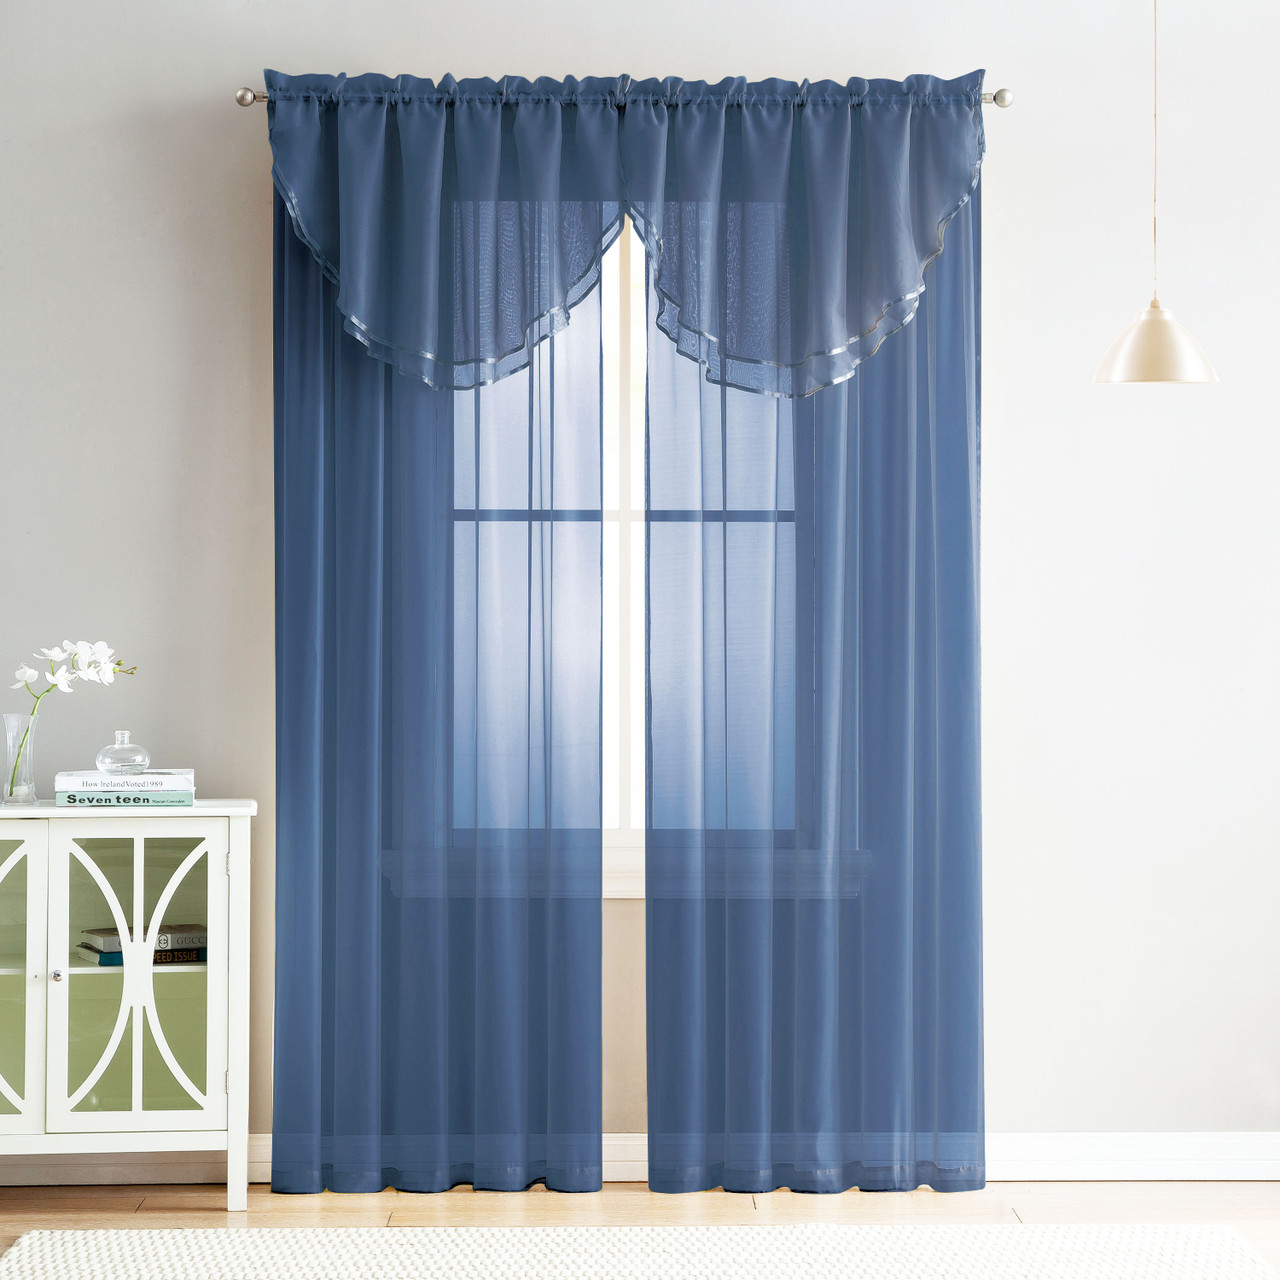 4 Piece Sheer Window Curtain Set For Living Room Dining Room Bay Windows 2 Voile Valance Curtains And 2 Panels 84 In Long Navy My Infinity Store